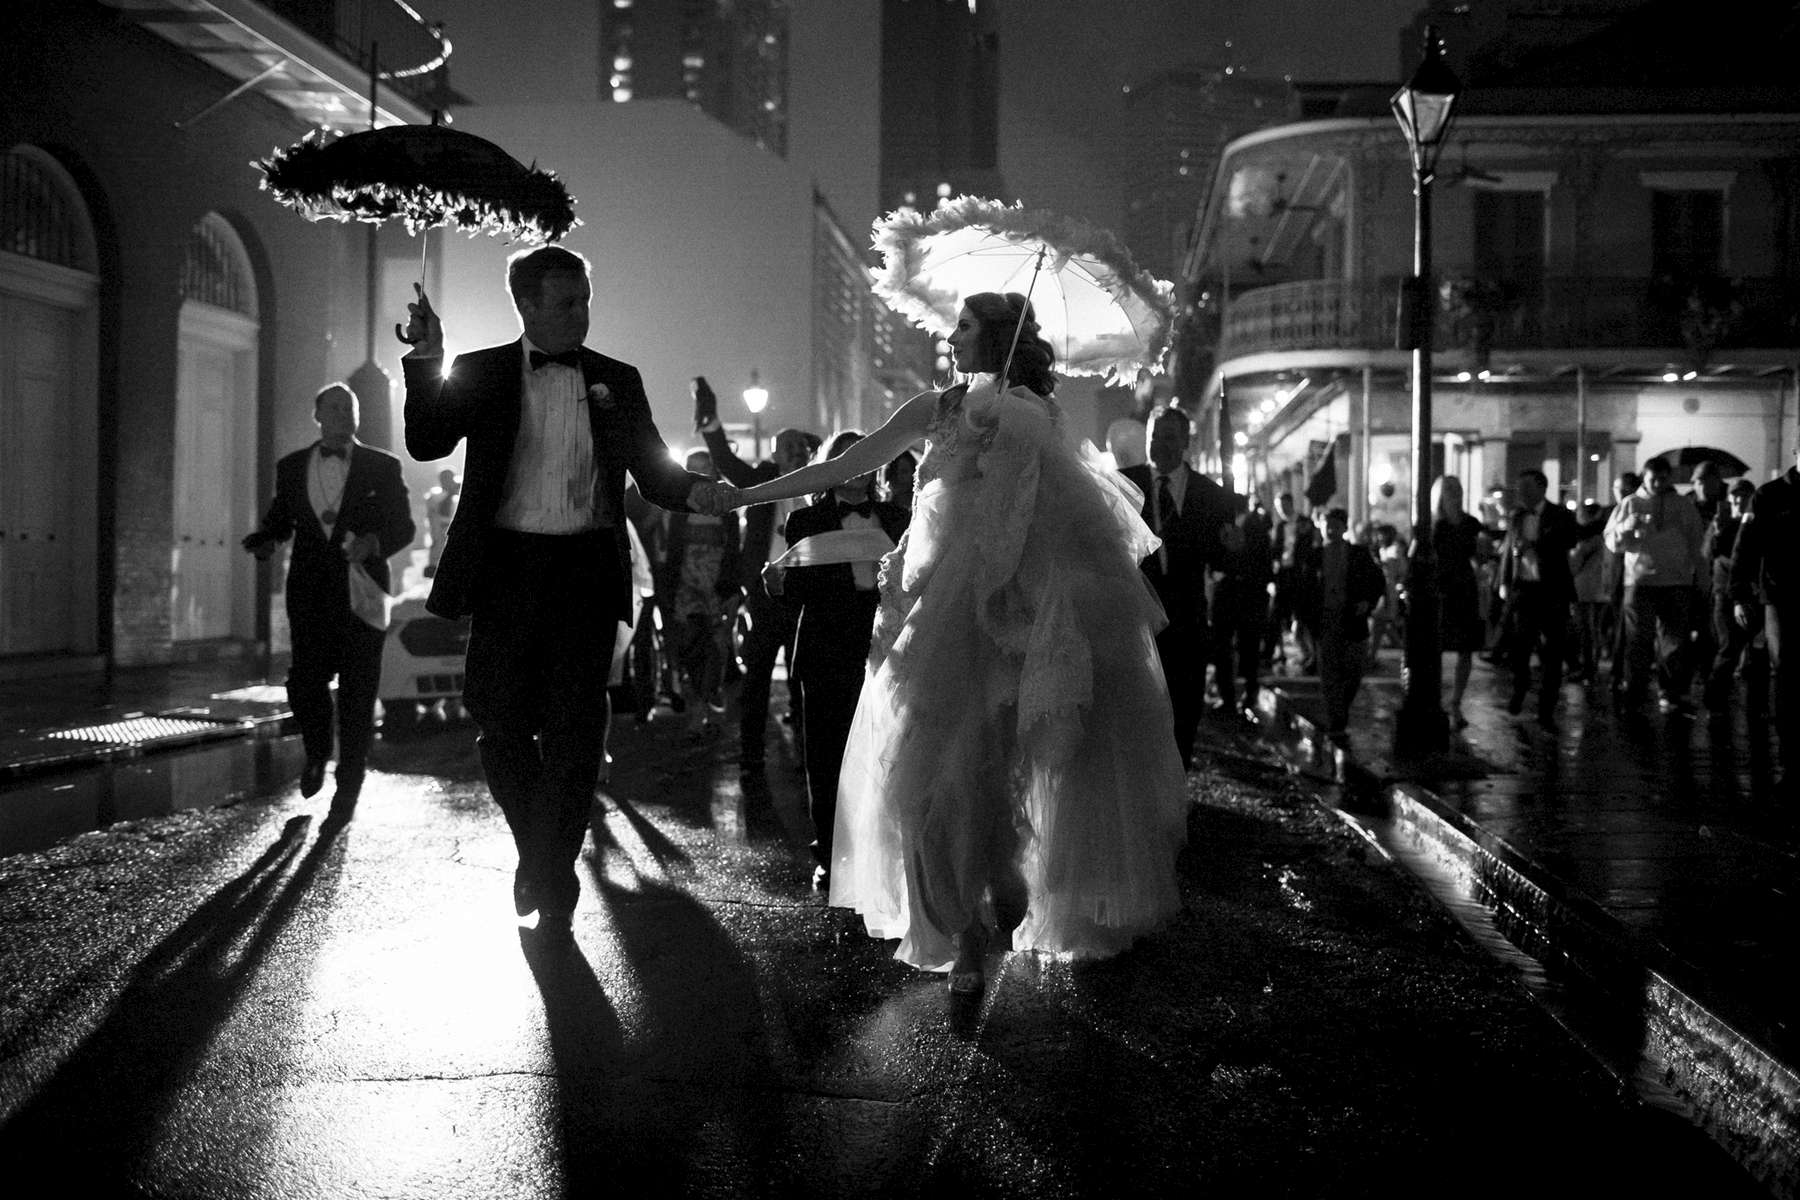 Holly Barker and Kirk Ogrosky Wedding in New Orleans on December 31, 2016. Photo by Paul Morse